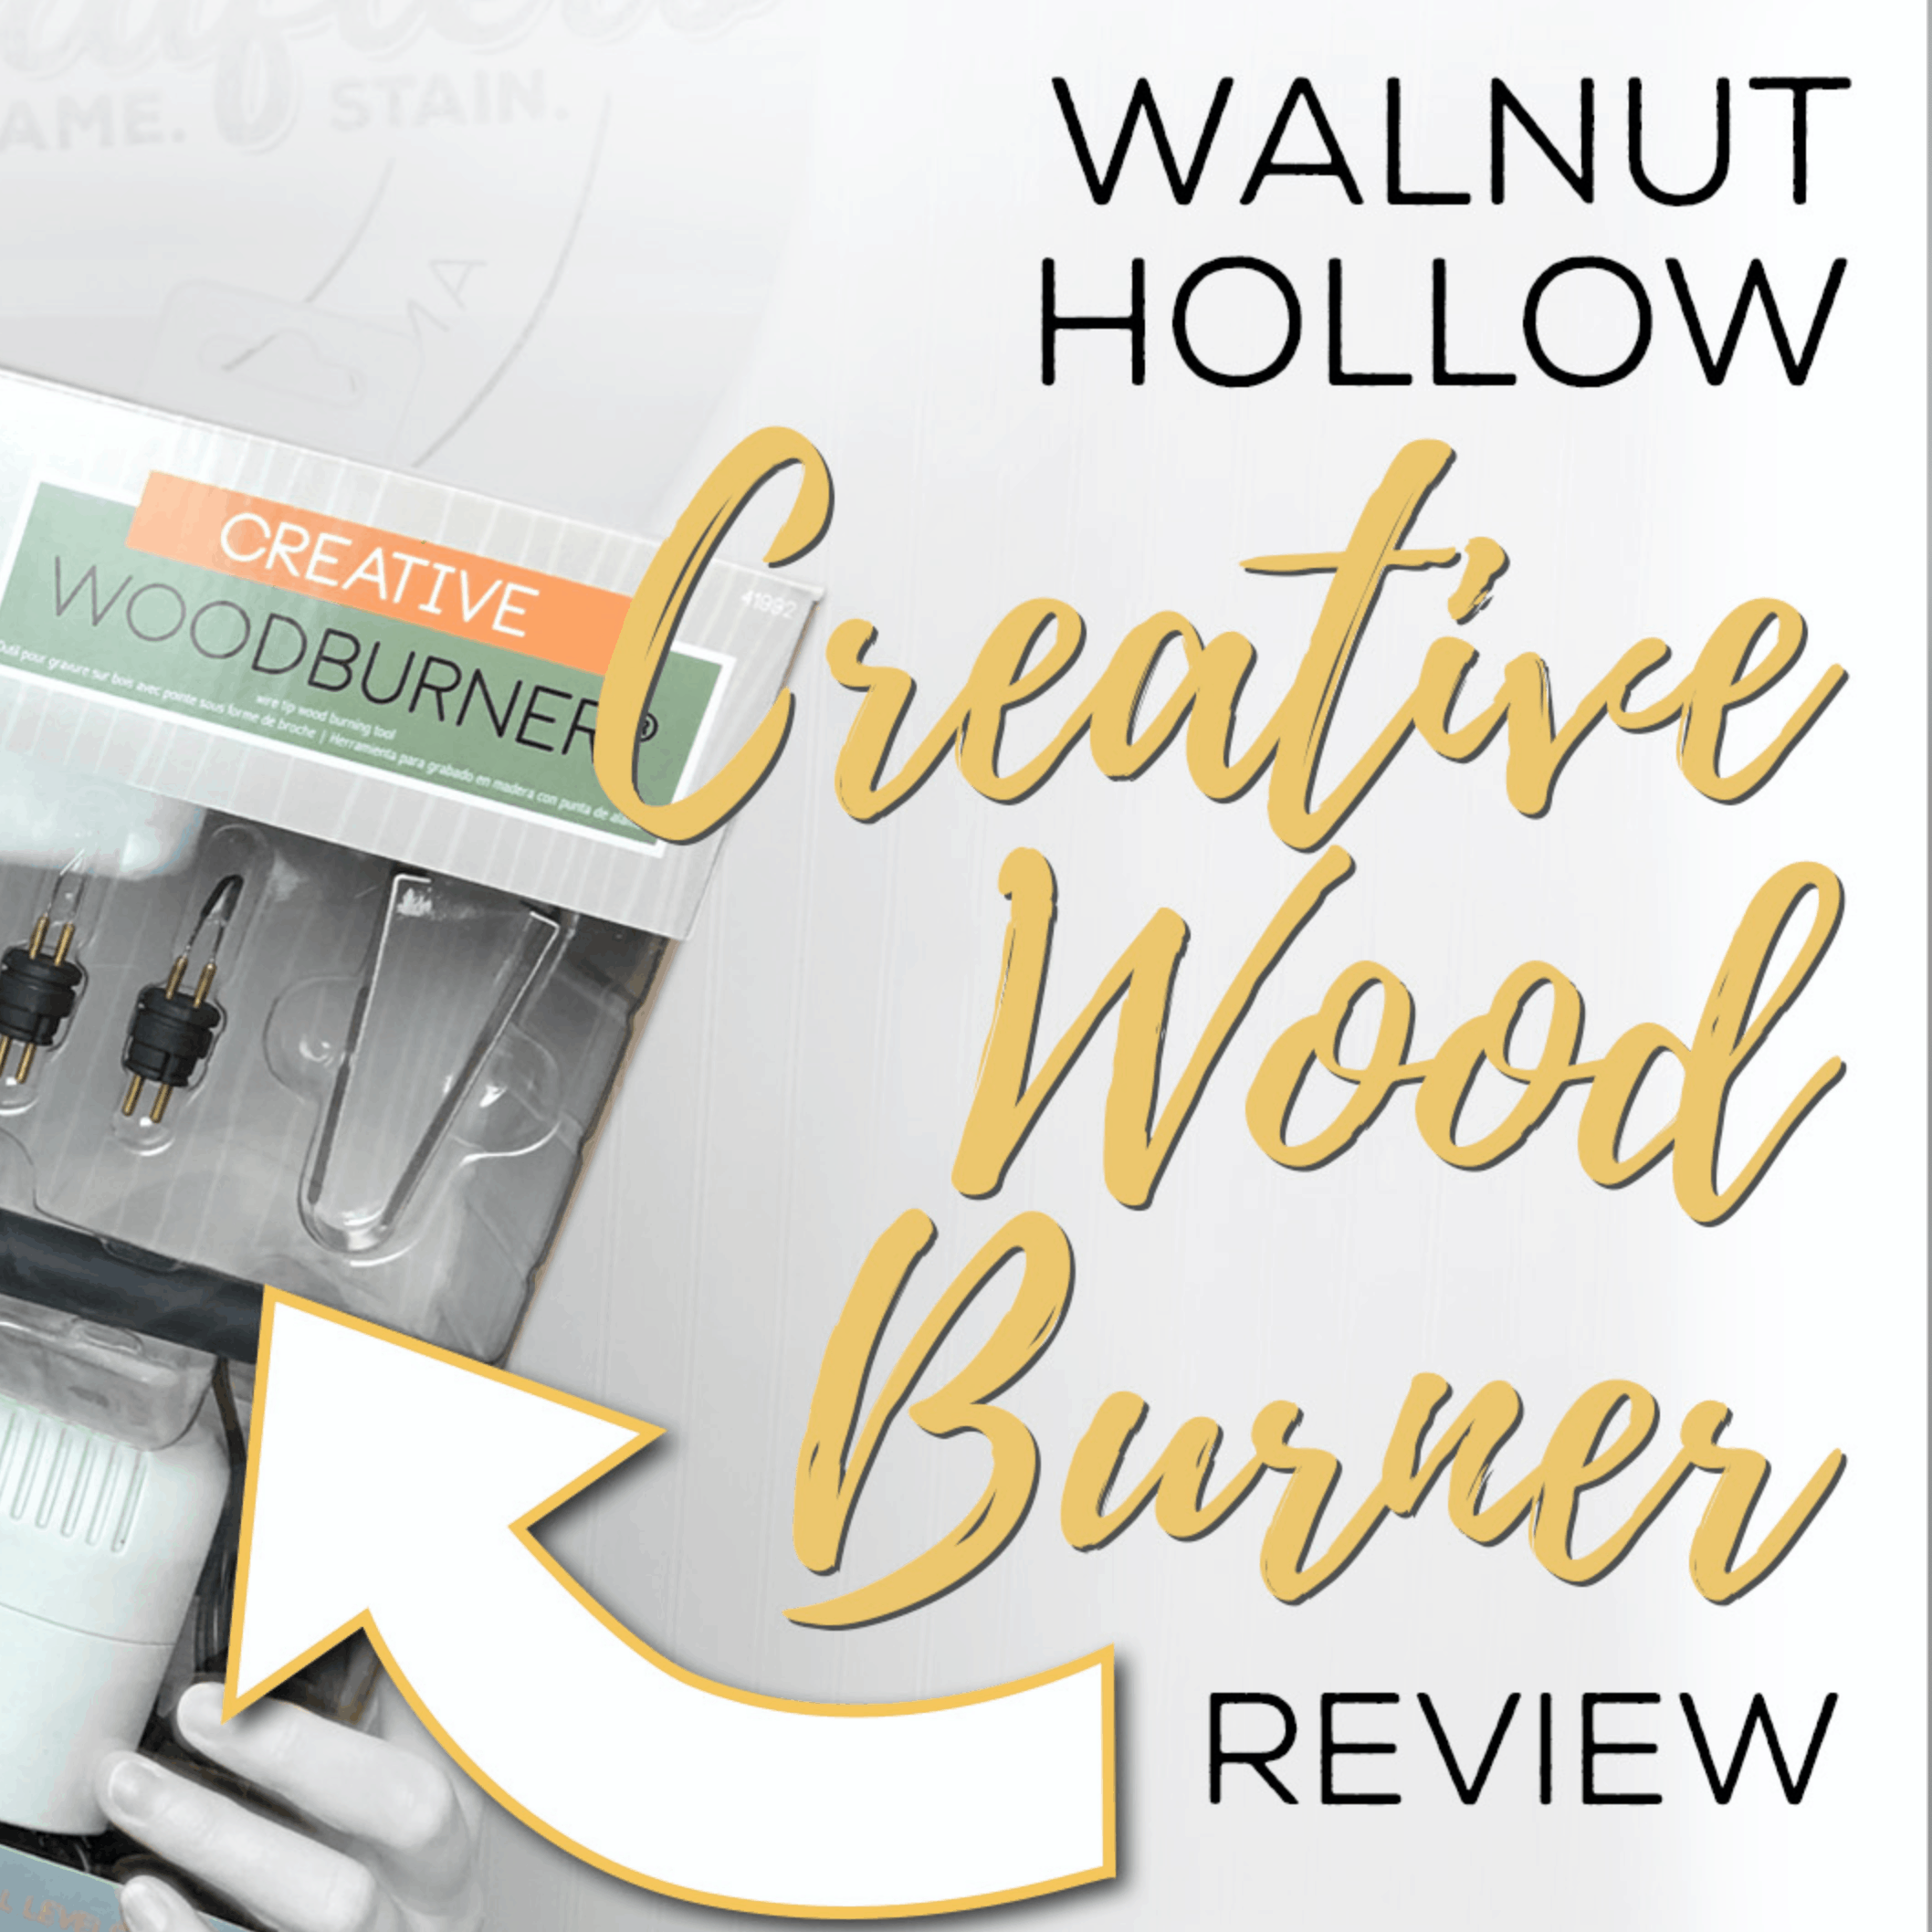 Walnut Hollow Creative Wood Burner Tool Review